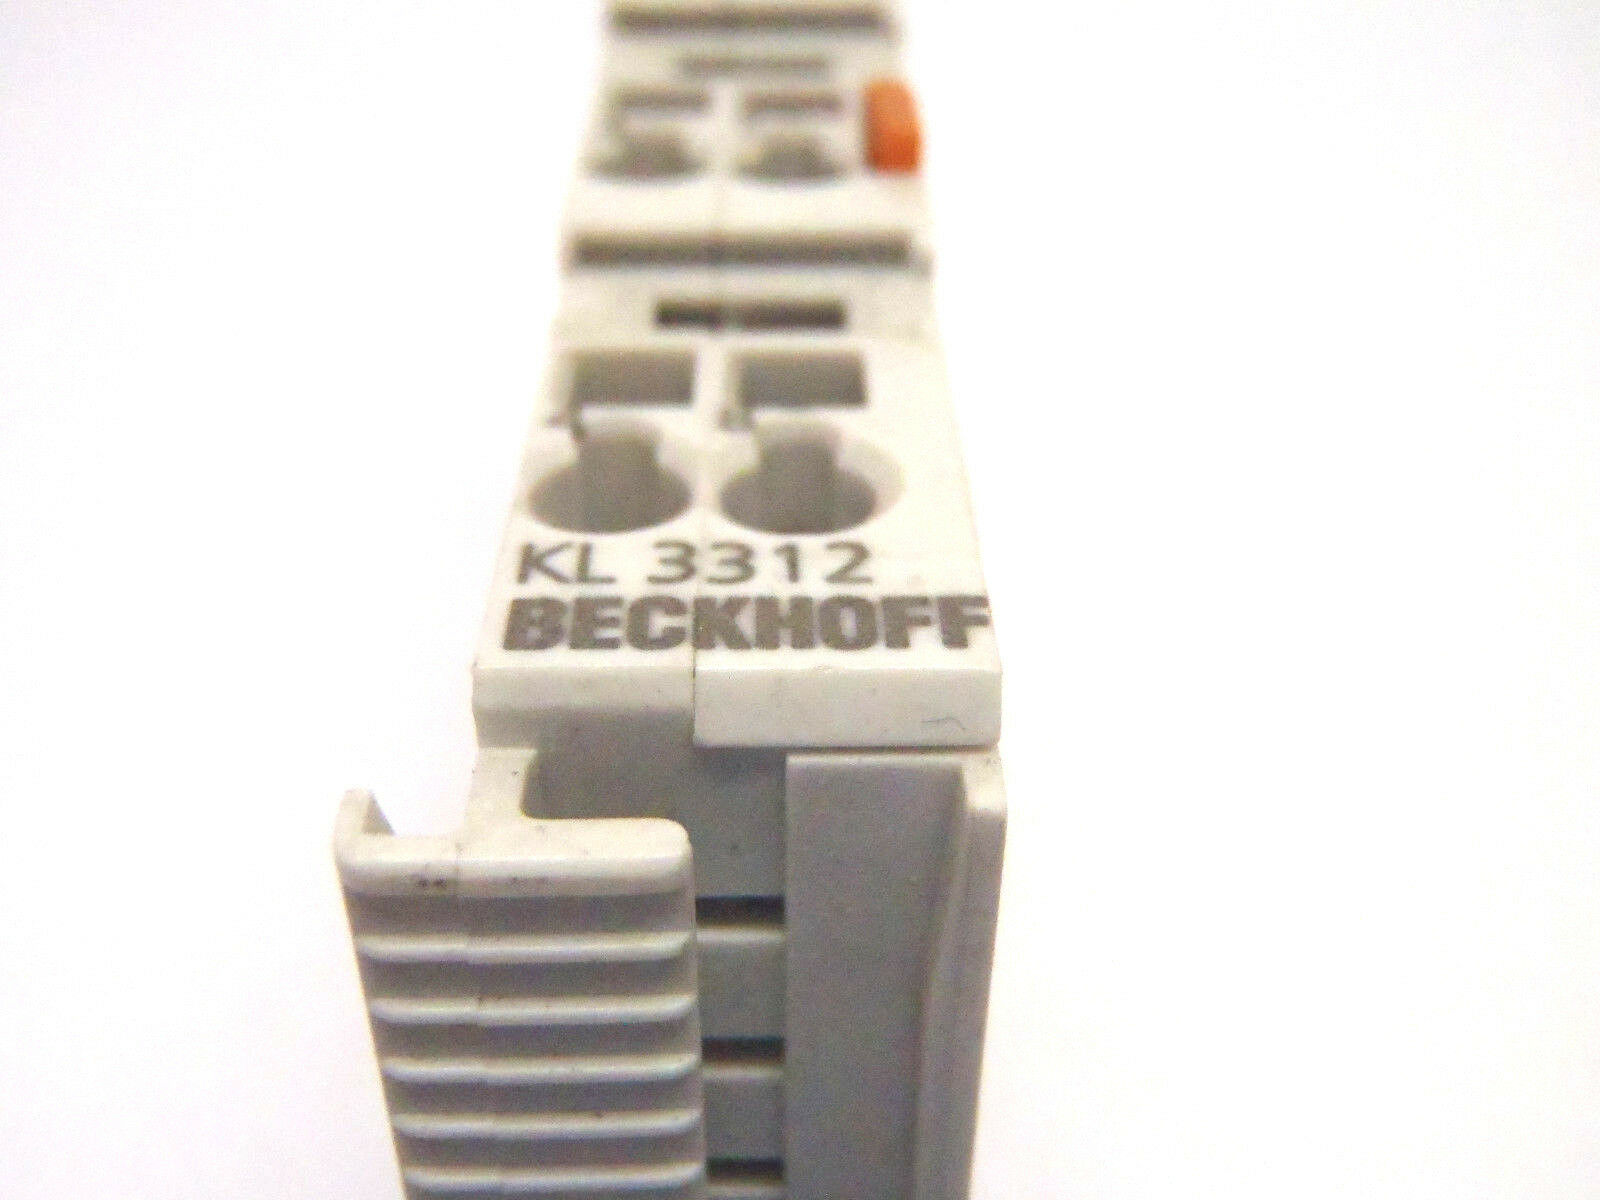 Beckhoff KL33120010 2 x Input for Thermoelements with Wire Breakage Ident.